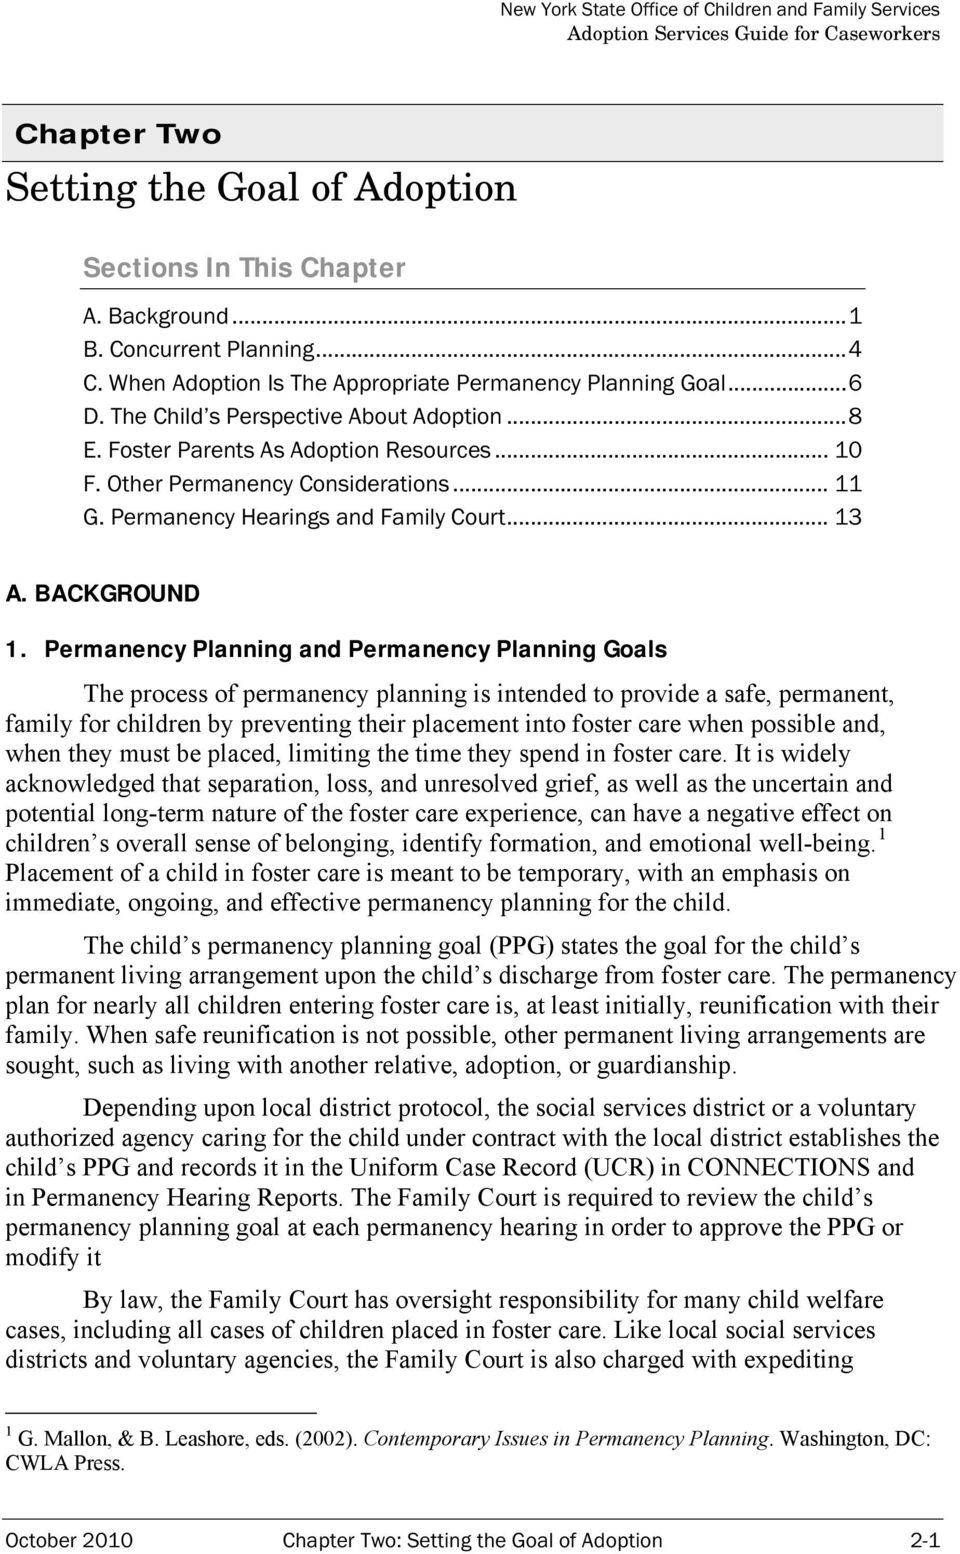 Permanency Planning and Permanency Planning Goals The process of permanency planning is intended to provide a safe, permanent, family for children by preventing their placement into foster care when